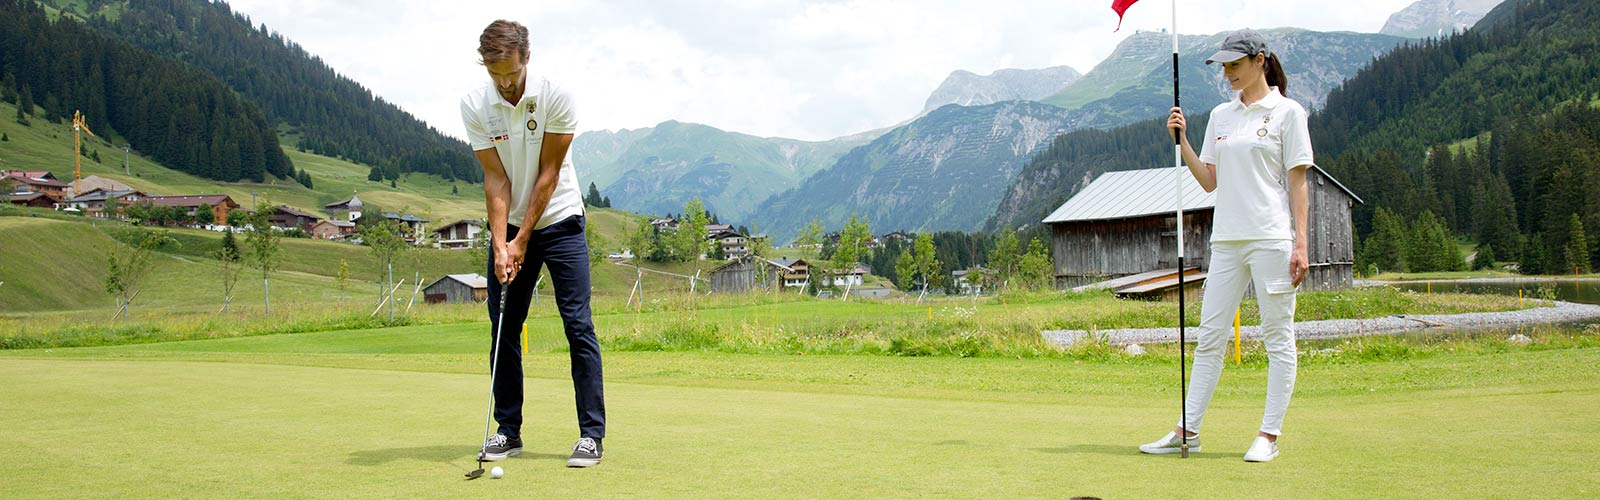 Golf with the family in Vorarlberg